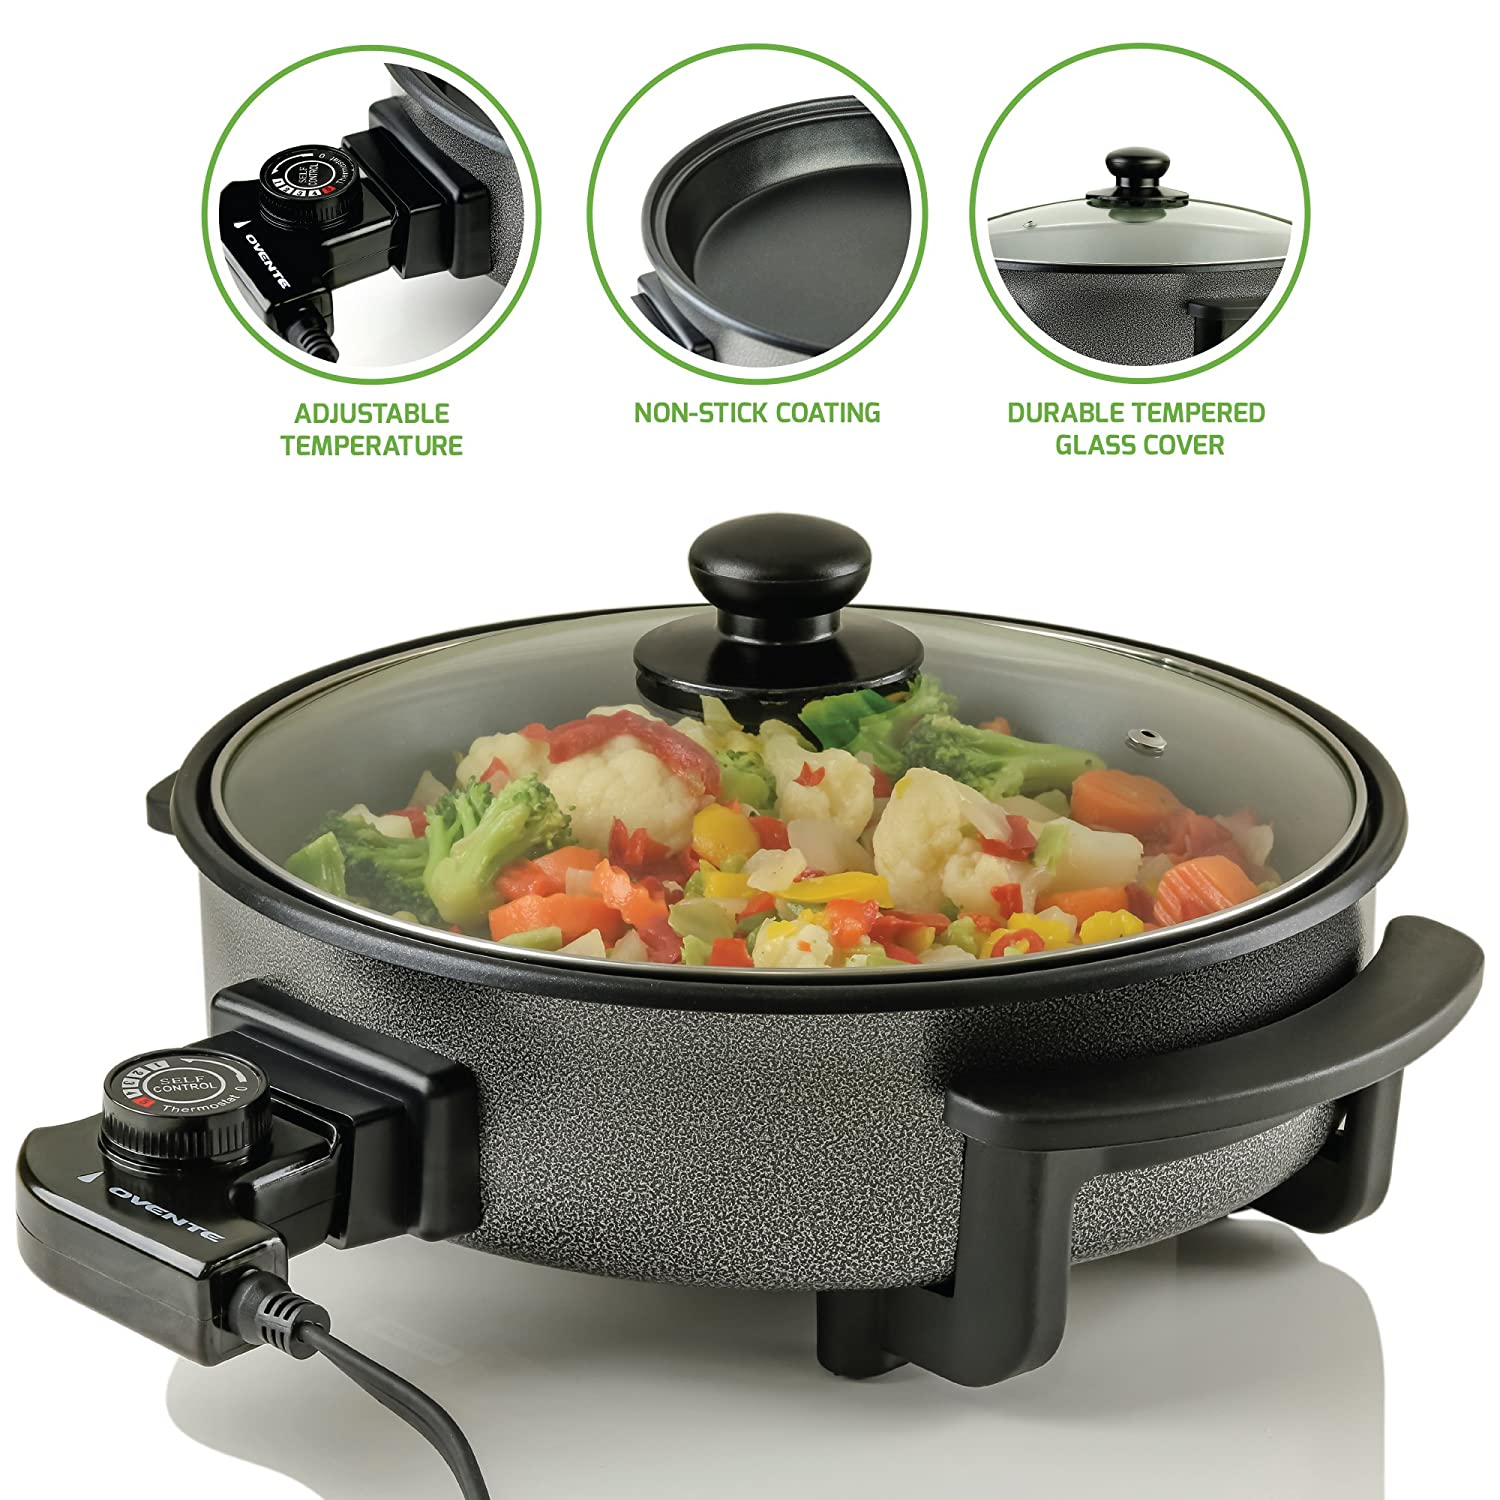 "Ovente Electric Skillet, 12"", 1400W, Non-Stick, Aluminum Body and Tempered Glass Lid, Removable Temperature Knob, Black (SK11112B)"